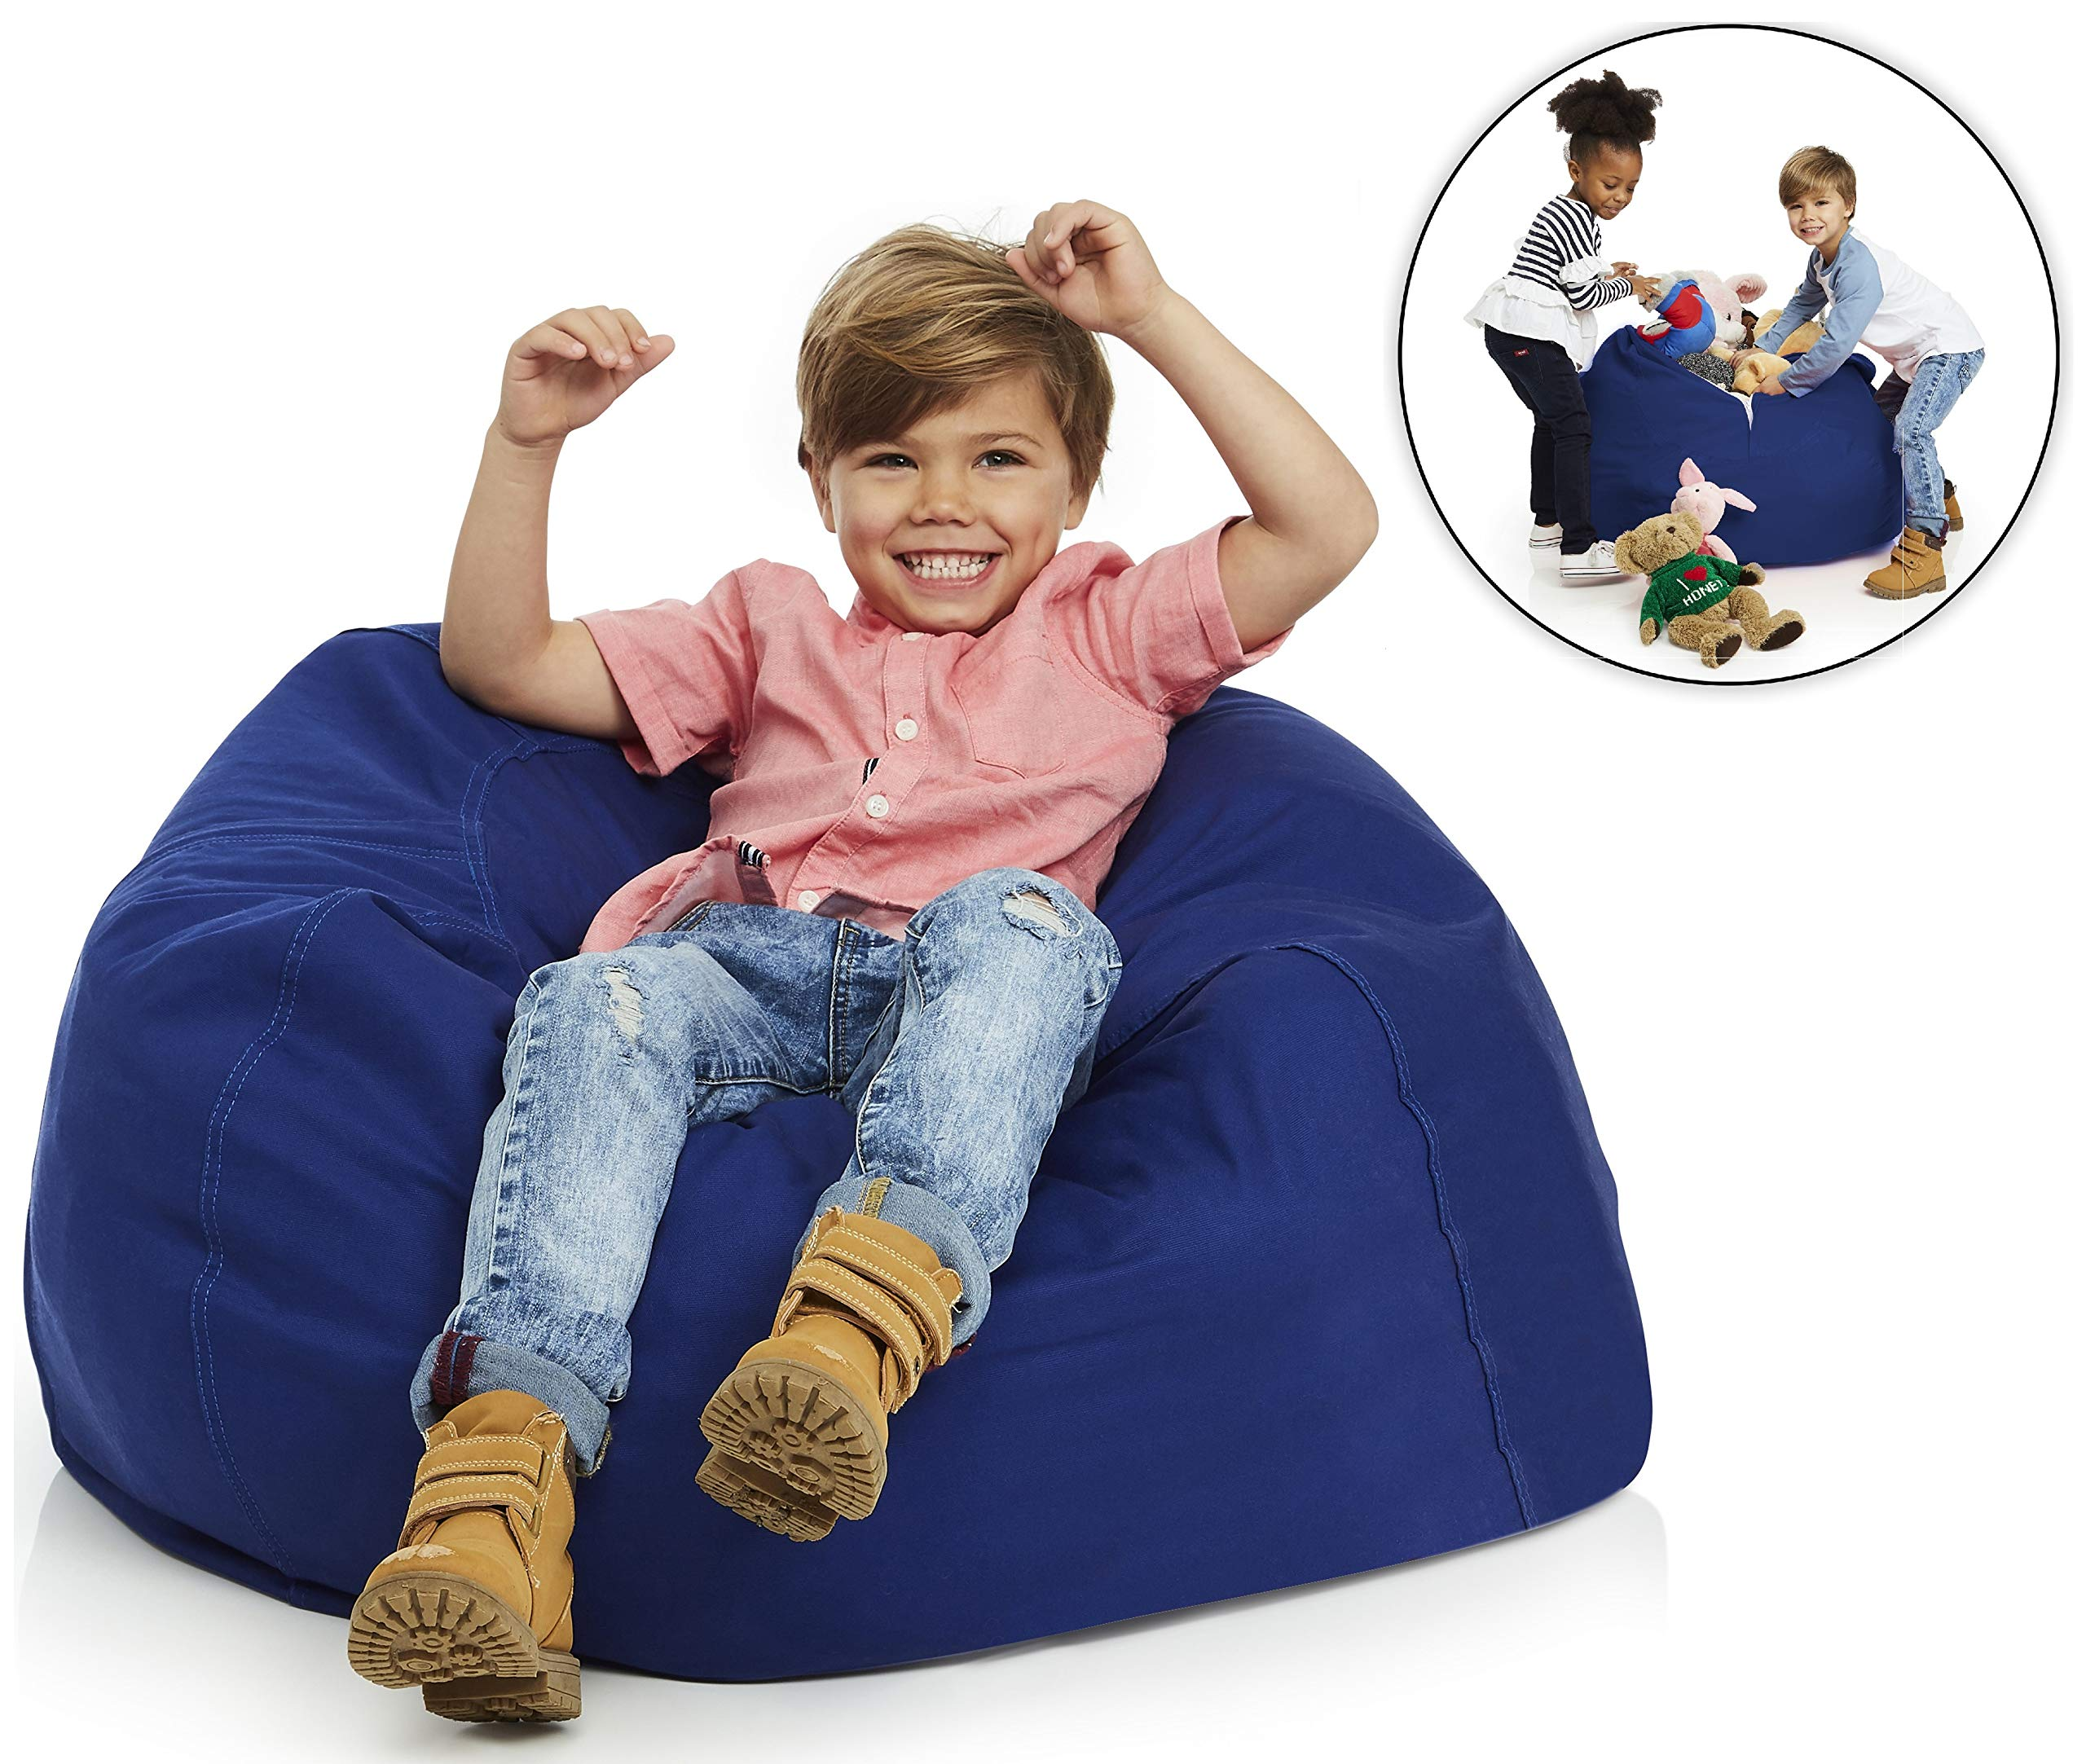 Delmach Stuffed Animal Storage Bean Bag Chair | 38'' Width Extra Large | Premium Double Stitched Cotton Canvas | Kids Blue Bean Bag Cover